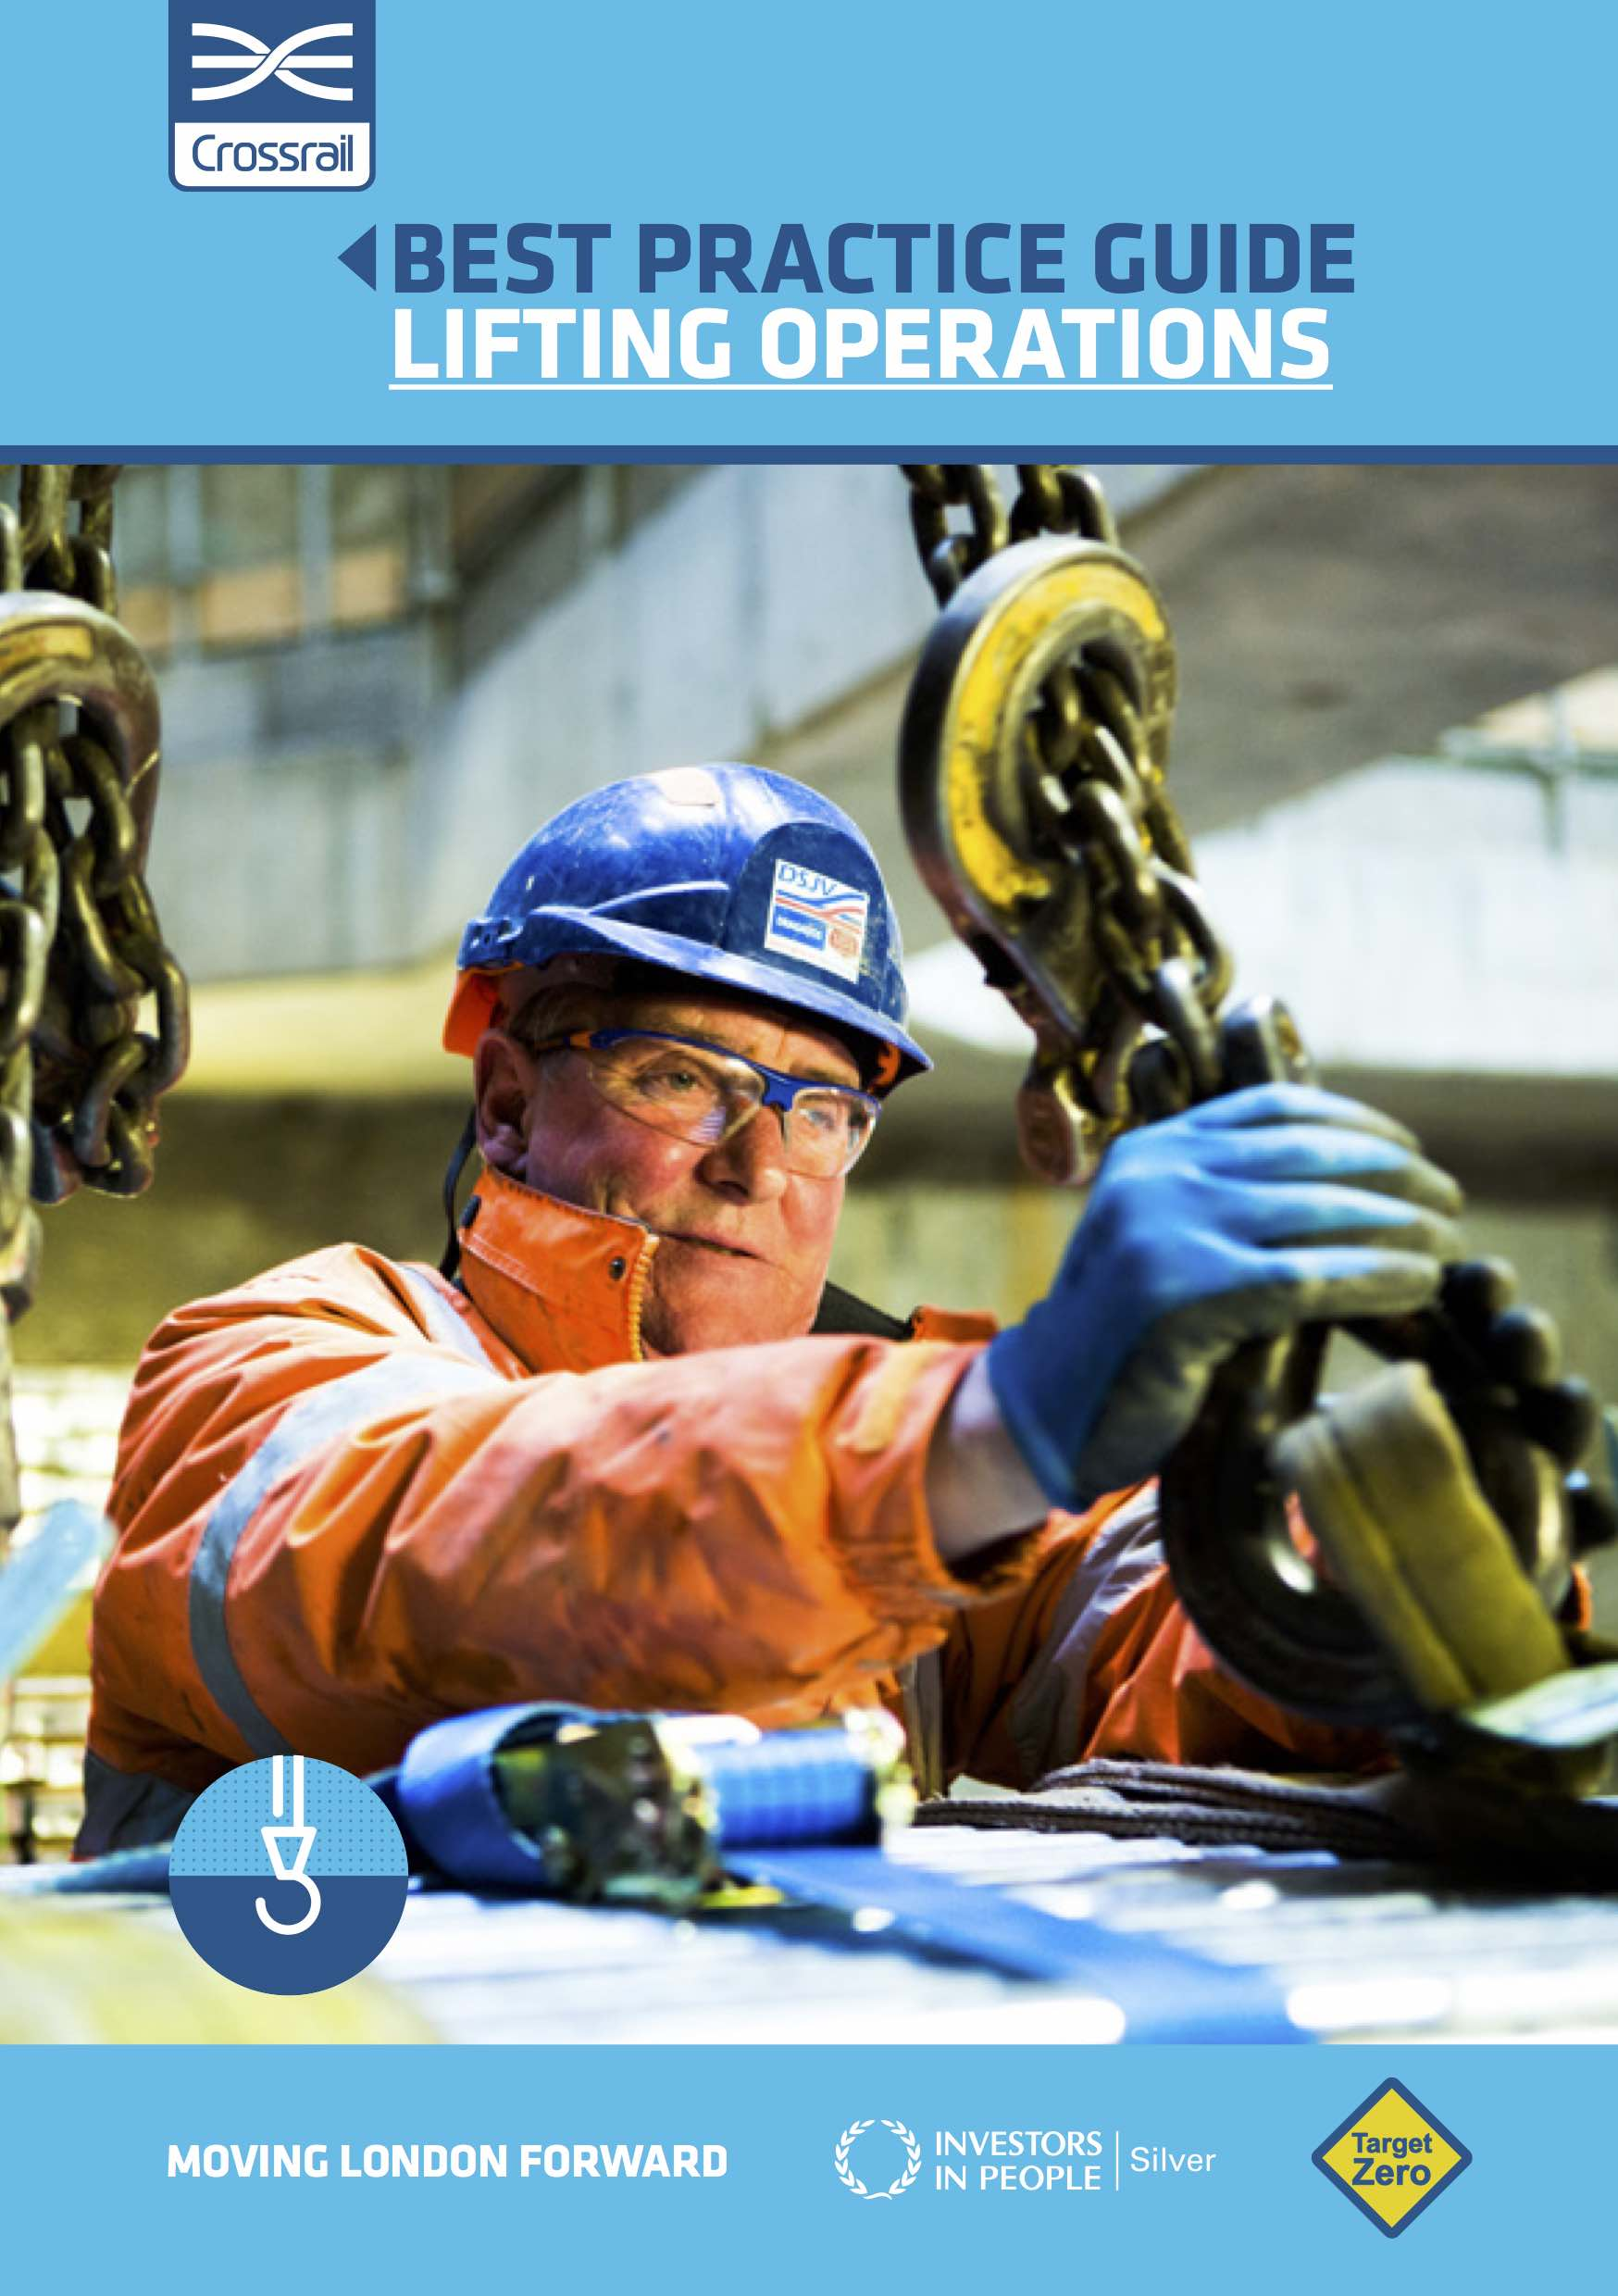 Best Practice Guide - Lifting Operations